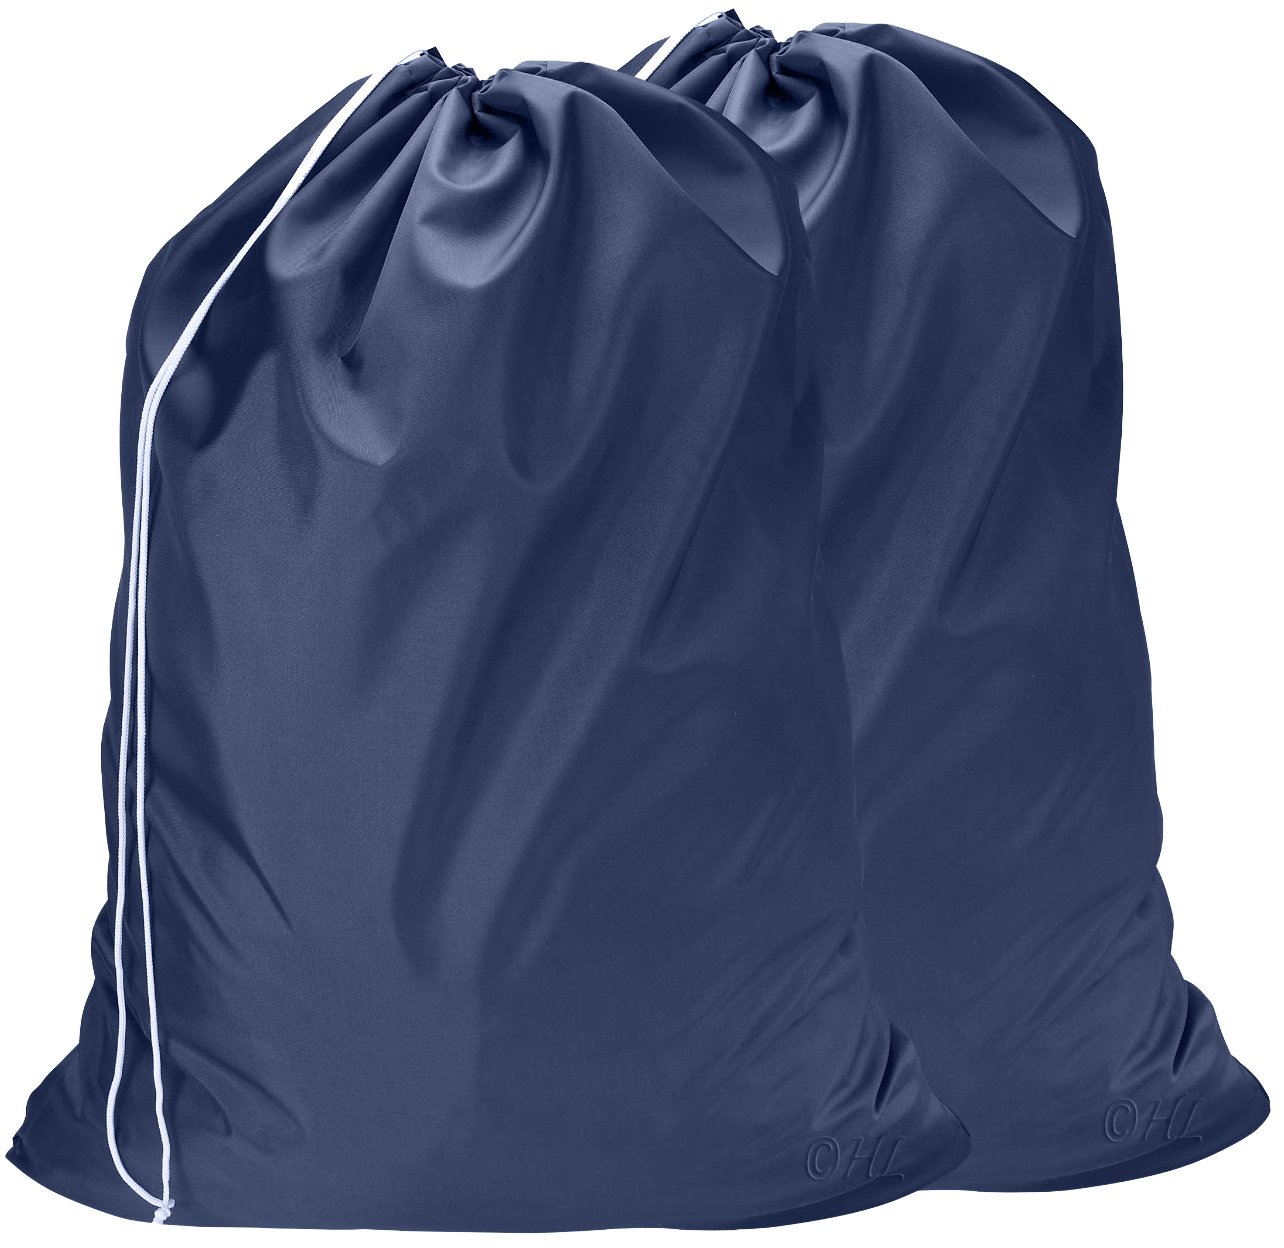 Nylon Laundry Bag - Locking Drawstring Closure and Machine Washable. These Large Bags will Fit a Laundry Basket or Hamper and Strong Enough to Carry up to Three Loads of Clothes. (Navy Blue | 2-PACK)